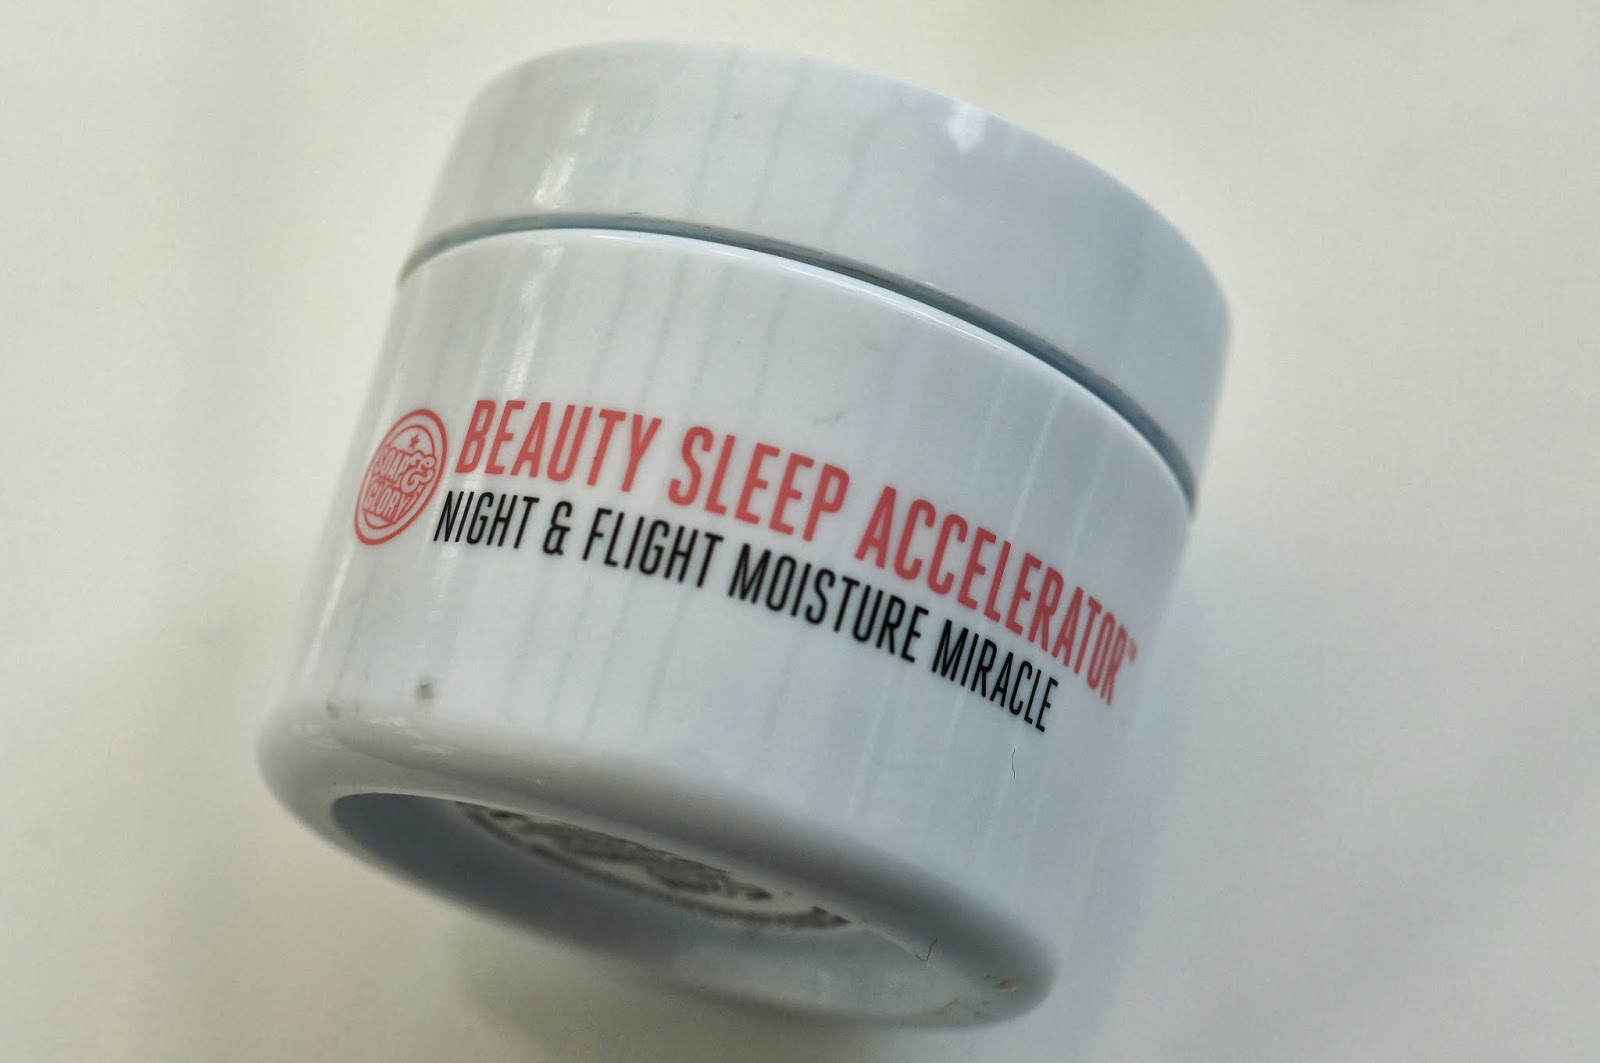 Beauty Sleep Moisturiser, Night and Flight Moisture Miracle by Soap and Glory